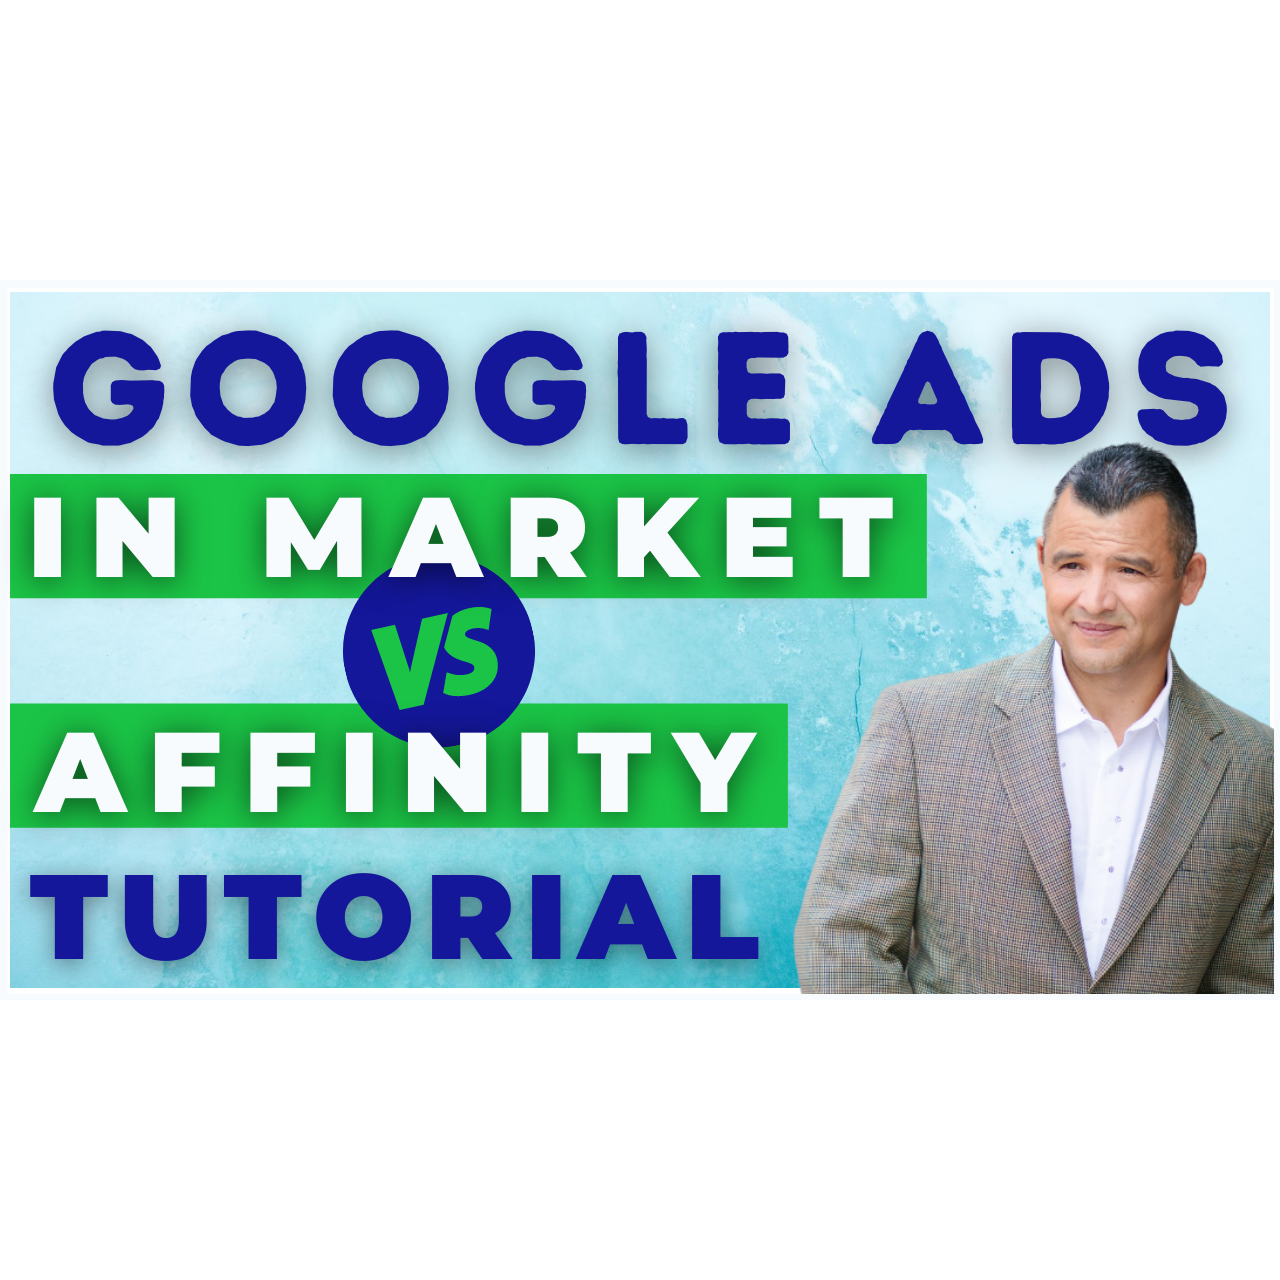 In Market Audience VS Affinity Audience